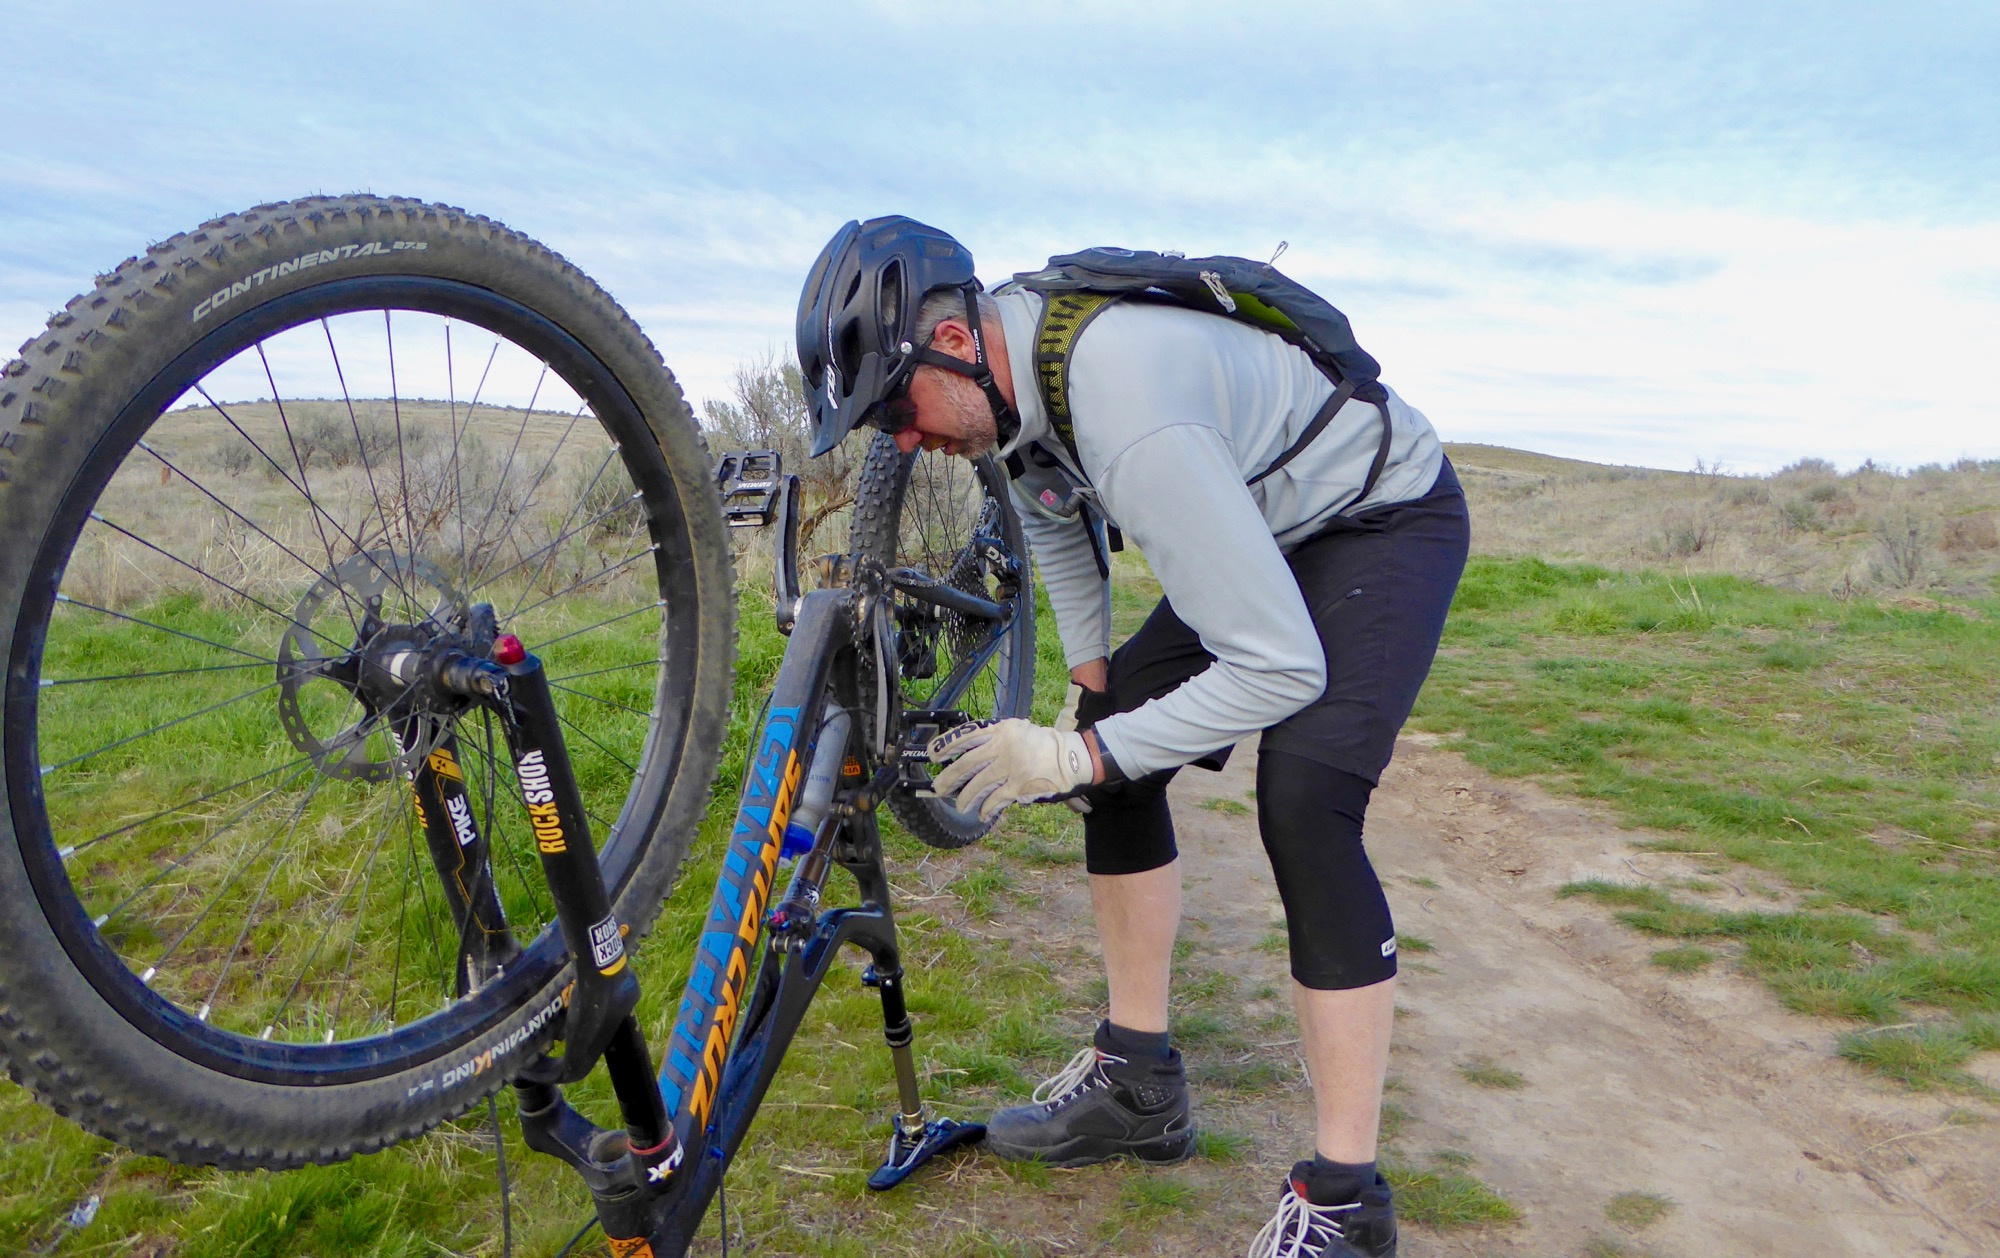 Don't have any mechanical skills? Here are 10 ways you can STILL maintain your MTB